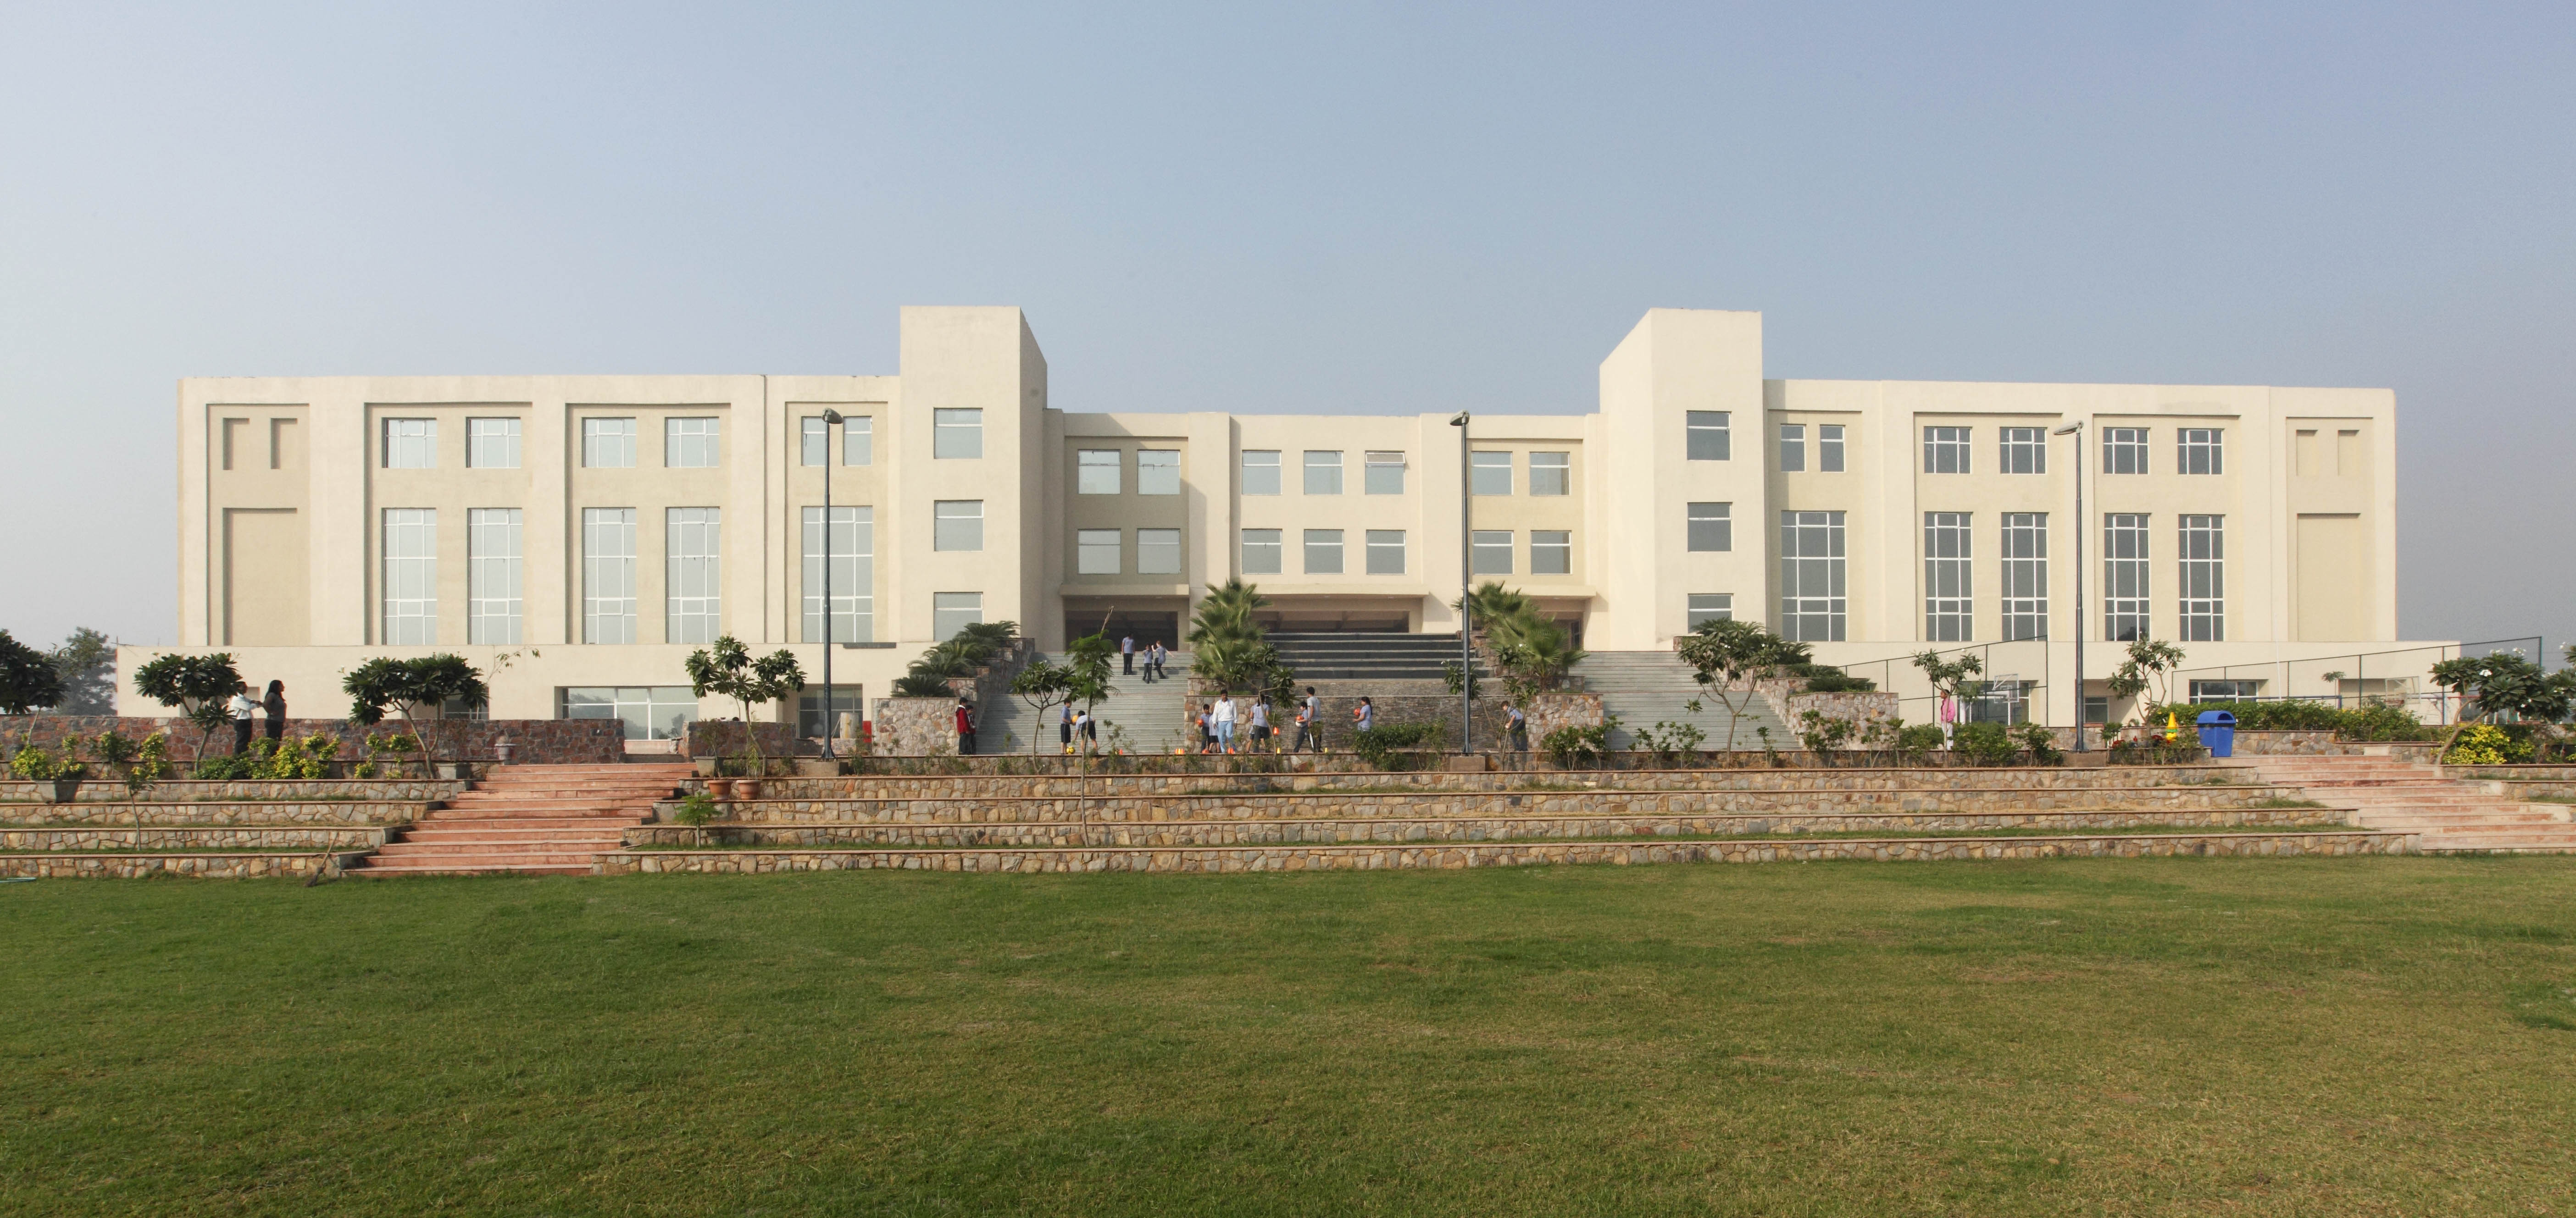 India Demonstrates Leadership Through Leed For Existing Buildings